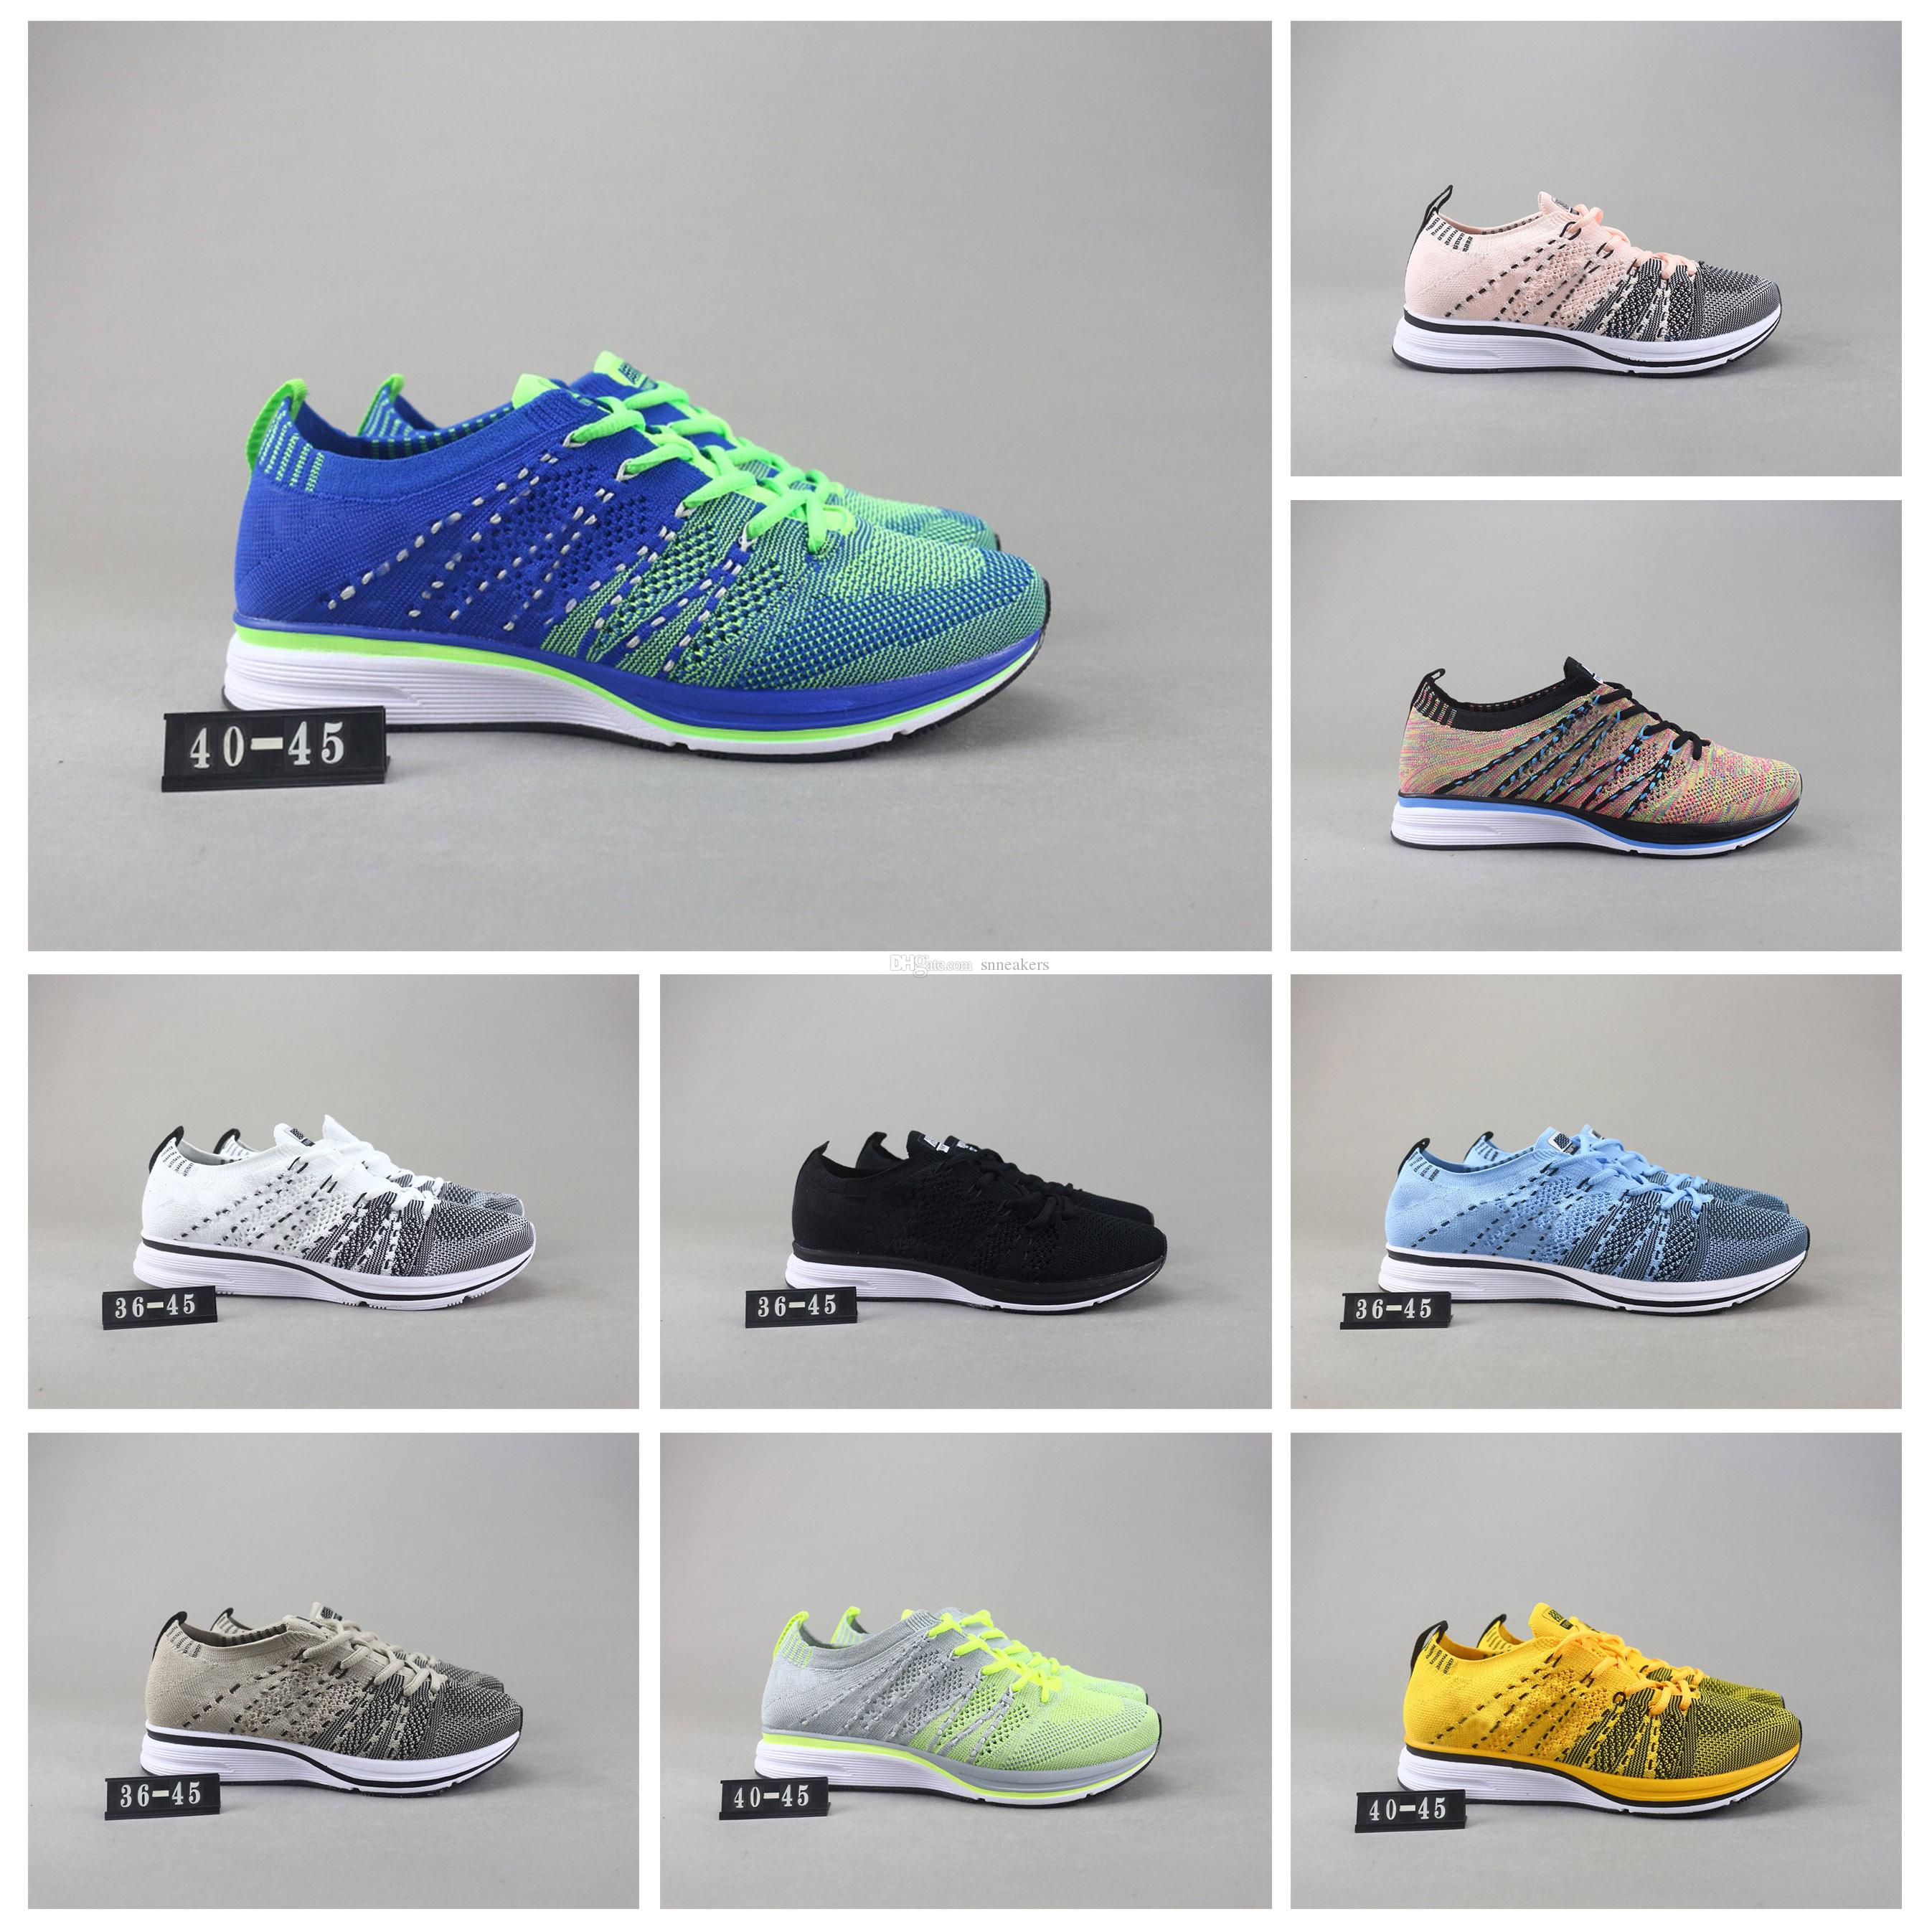 newest f1afd e2c49 Acquista Nike Flyknit Trainer Nuove Scarpe Da Corsa Flywire Knit Racer 2.0  Trainer Sneakers Sportive Womens Mens Shoes BE TRUE Multicolor Oreo Walking  ...